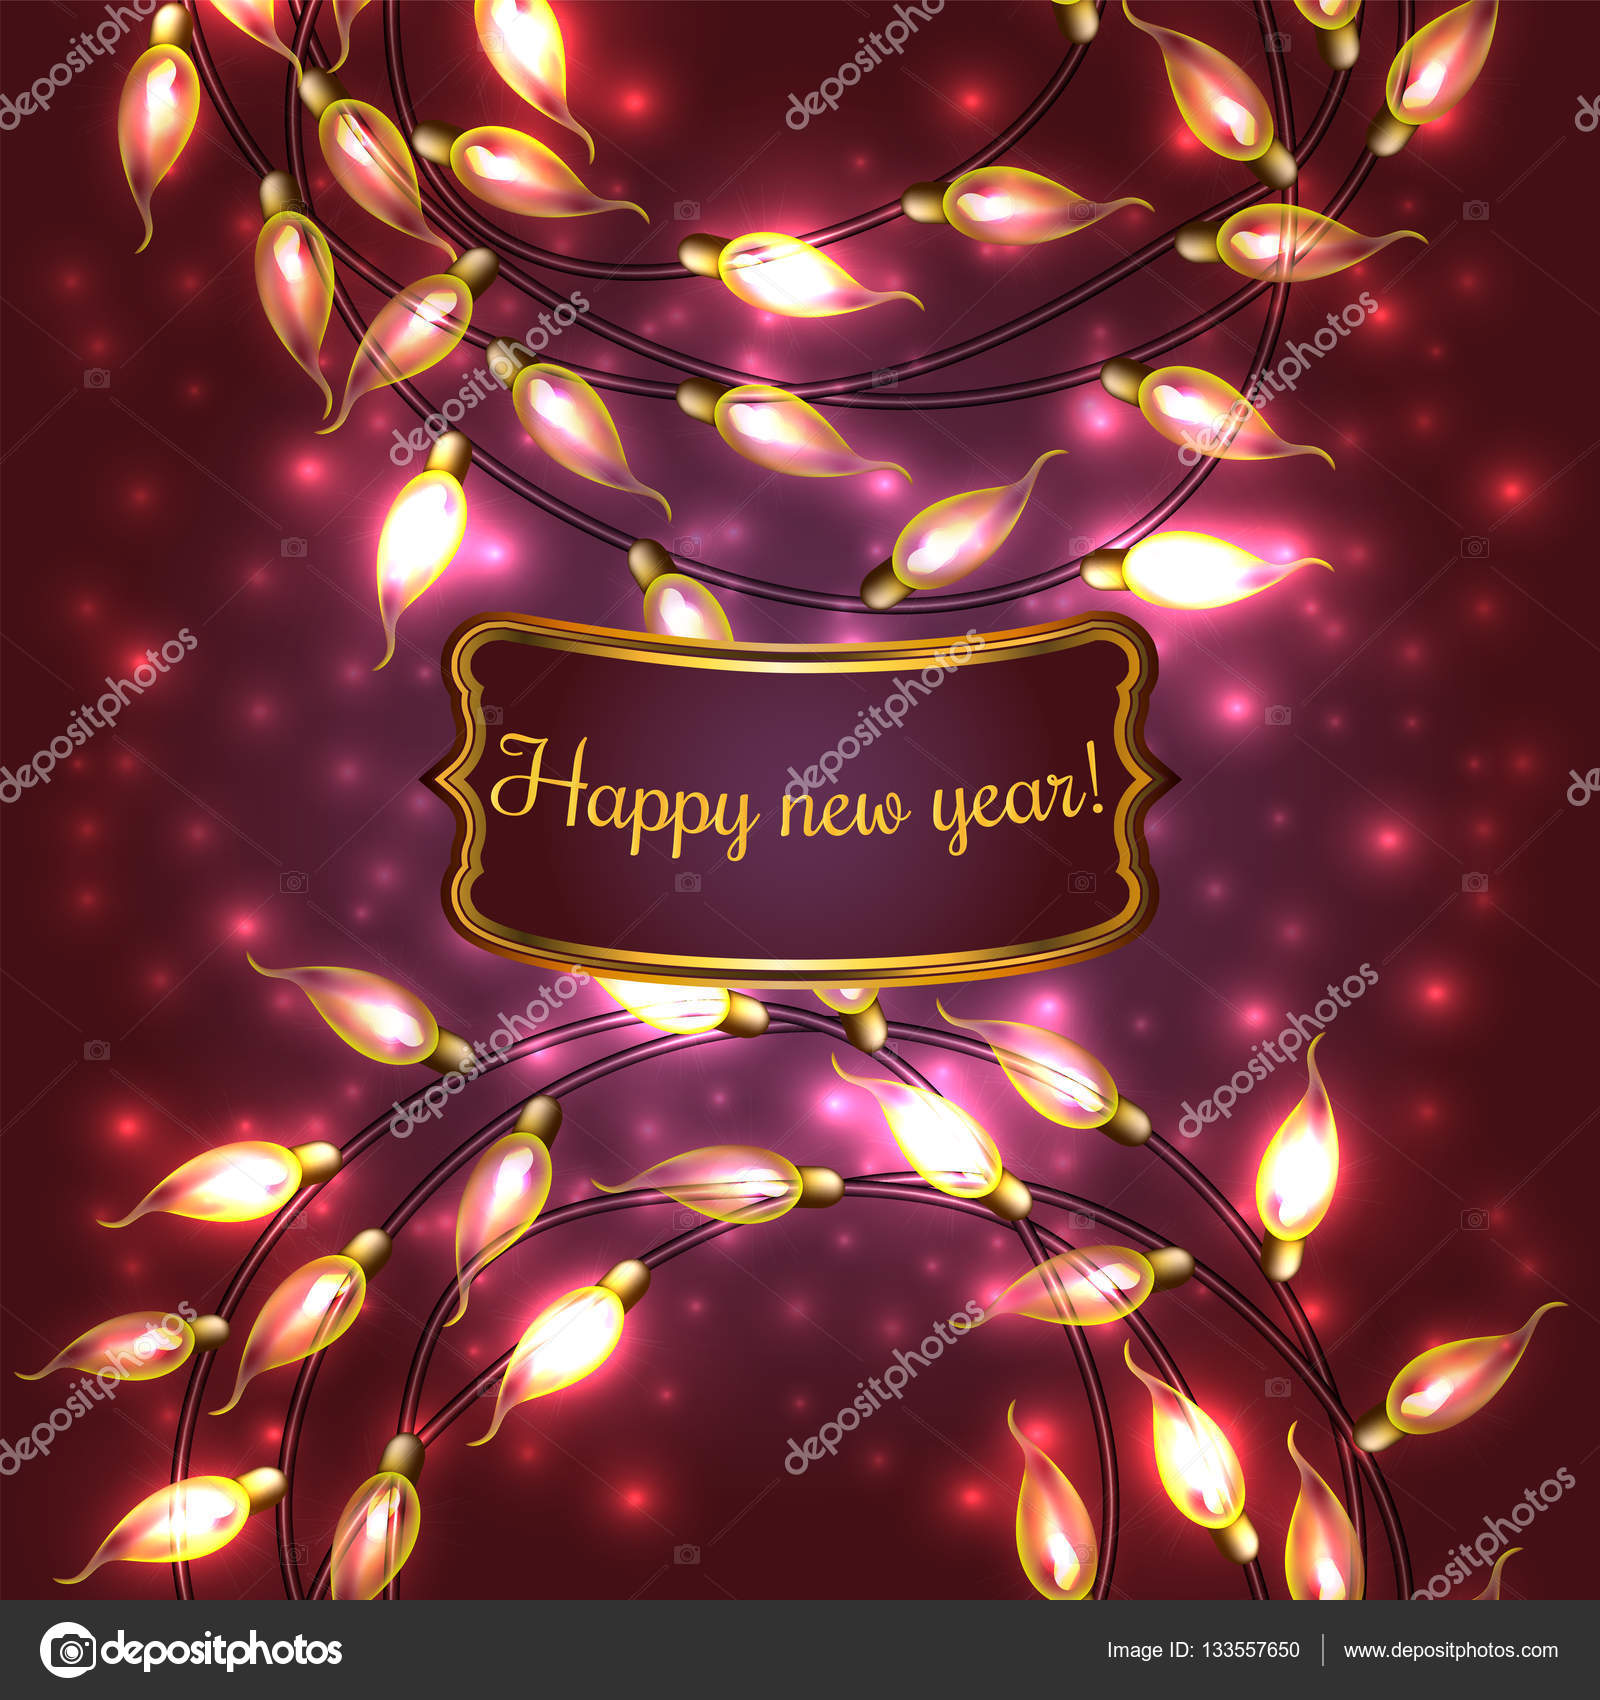 colorful red glowing christmas lightsvector elements can be used as backdrop for new year